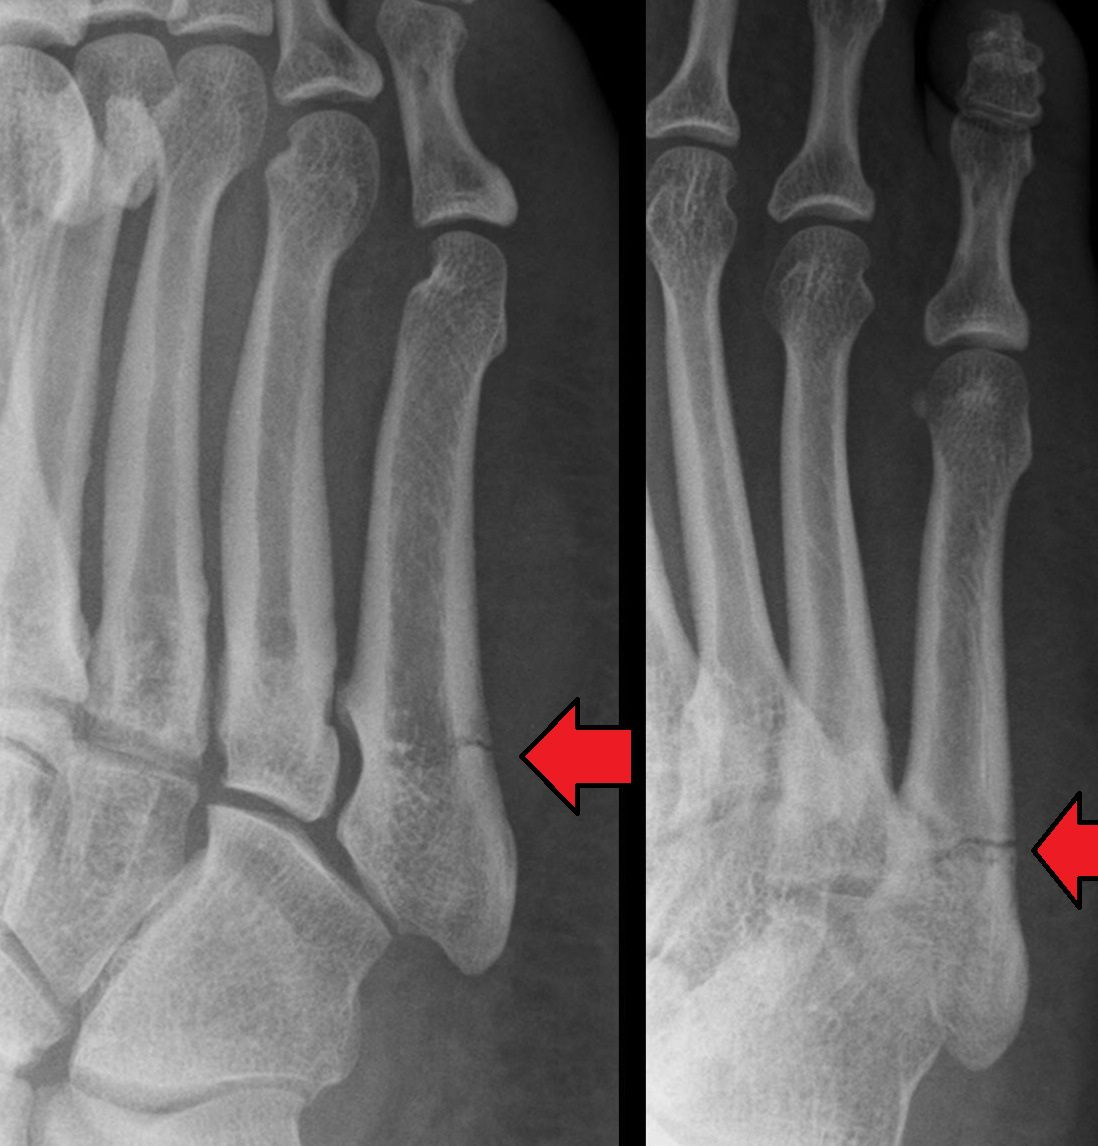 Stress Test Wiki: Fifth Metatarsal Or Jones Fracture